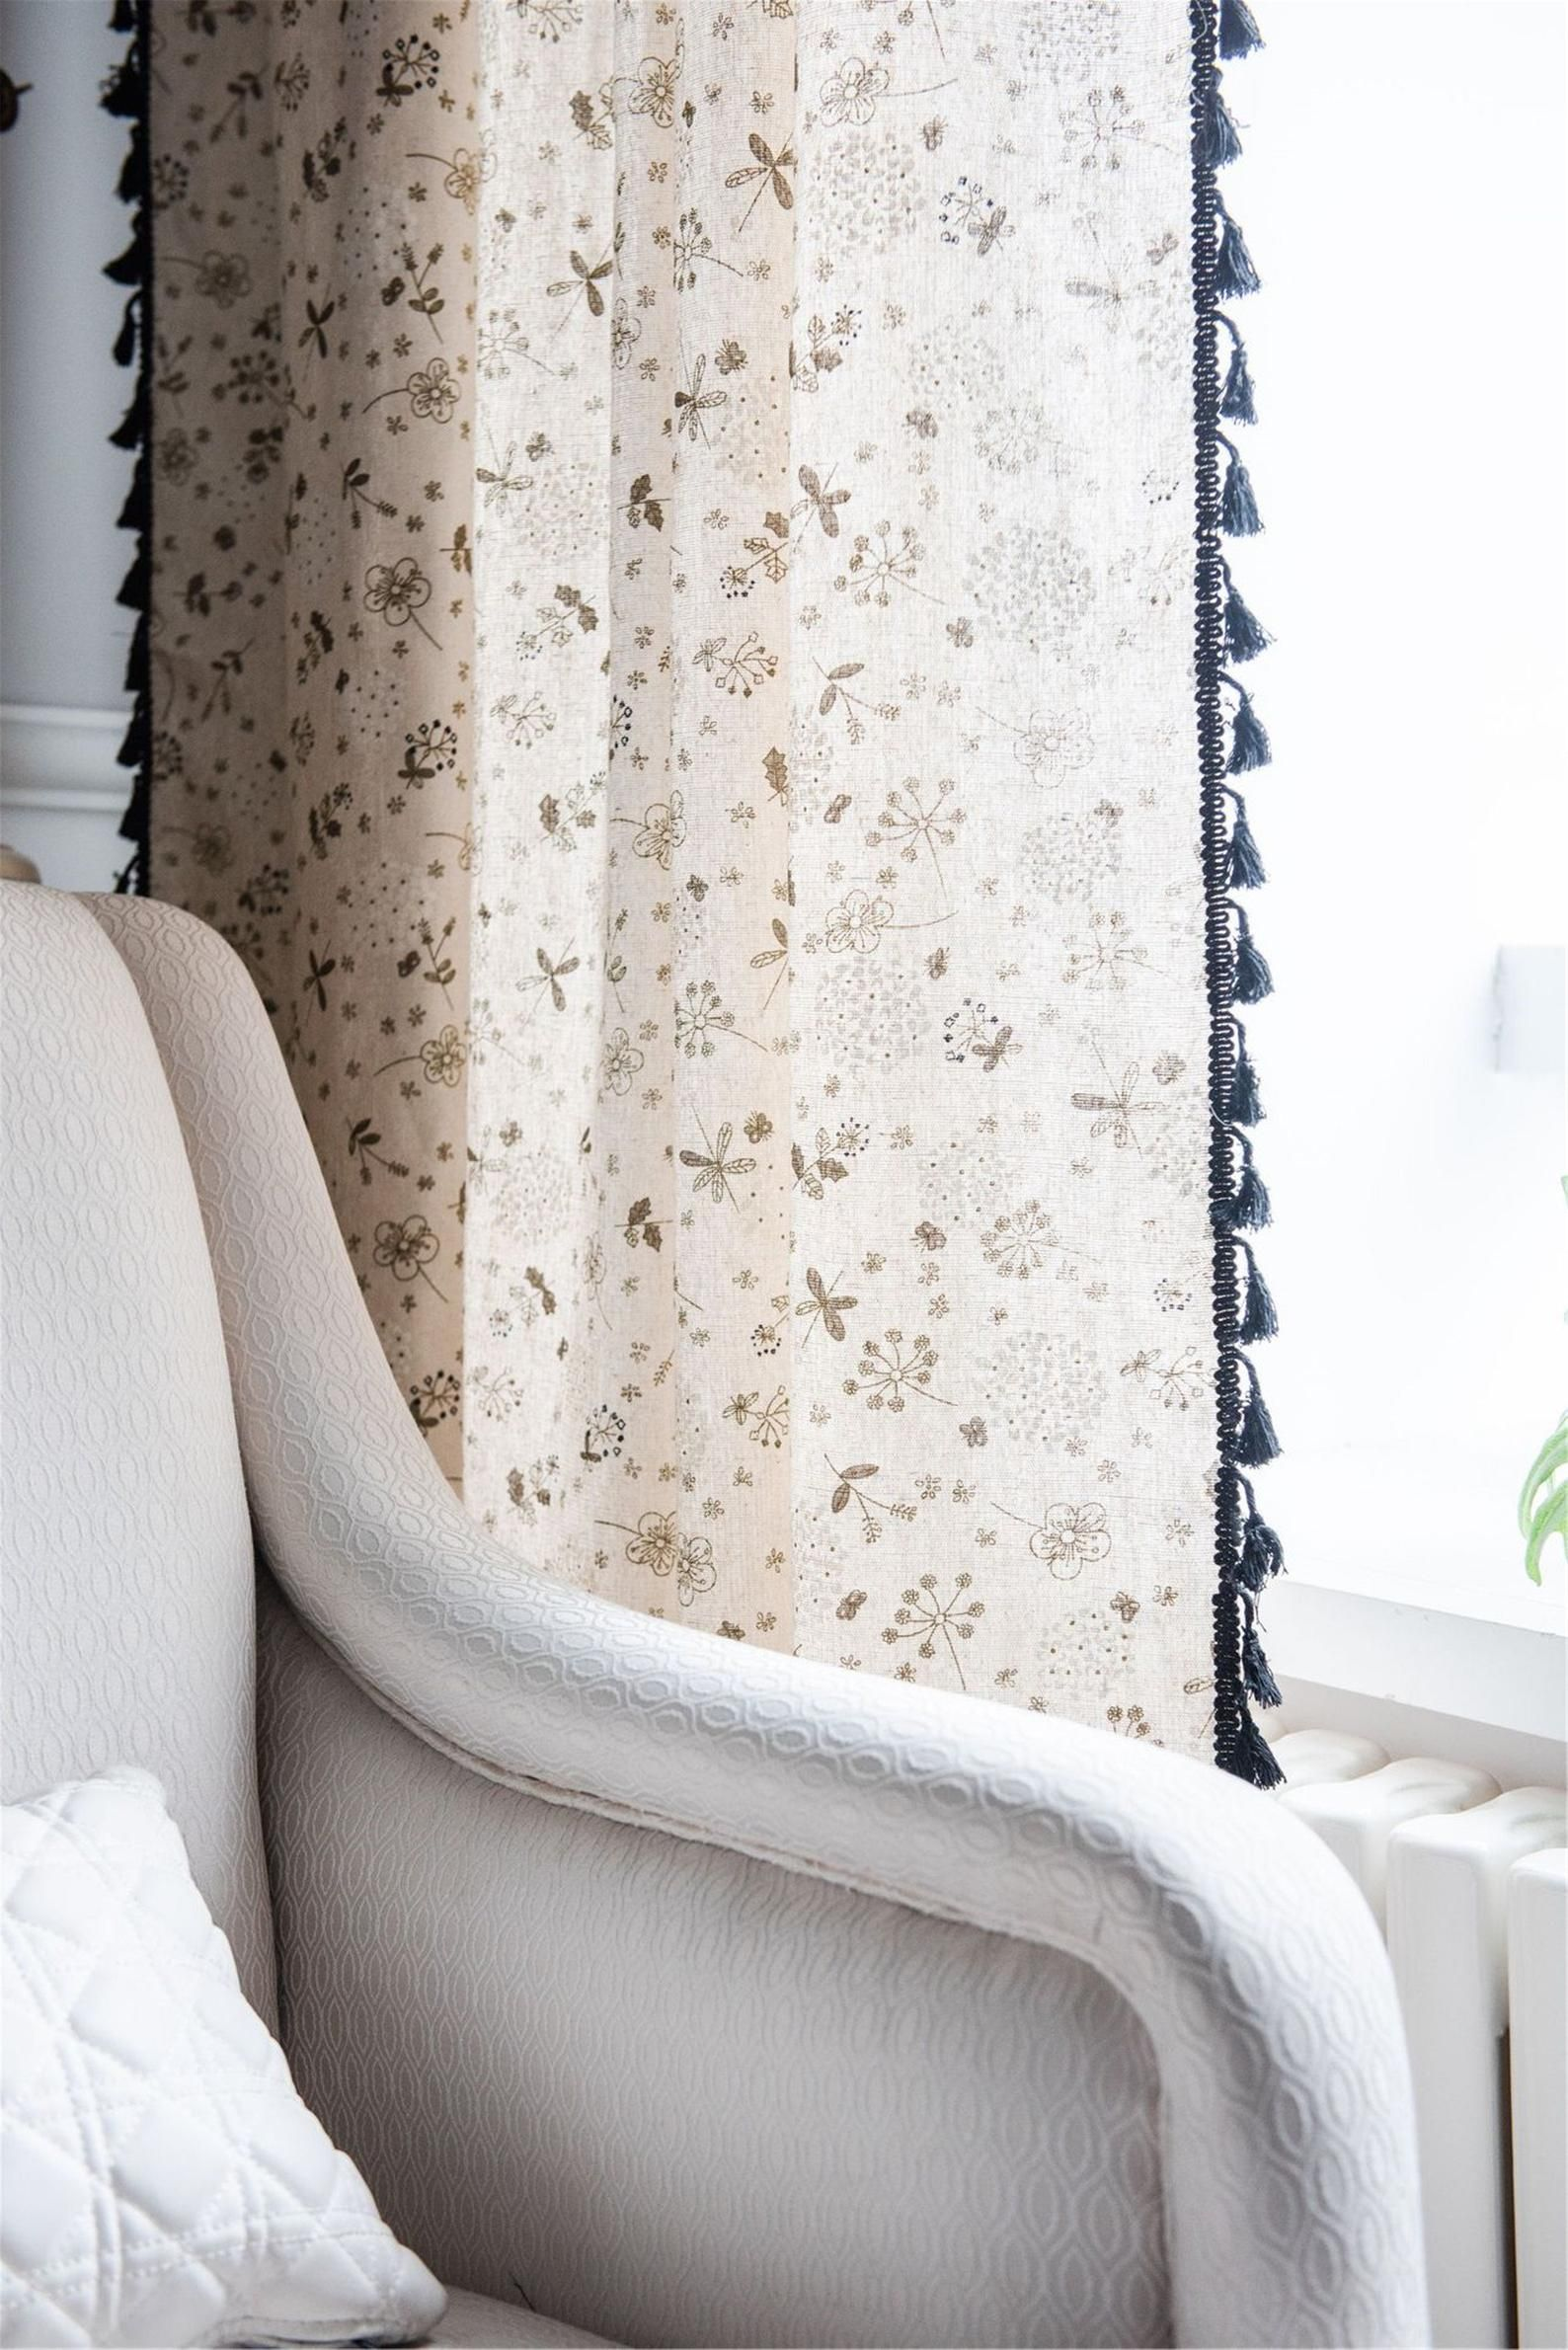 Cute Dandelion Curtains For Living Room For Bedroom For Etsy Curtains Living Room Curtains Living Room Kitchen Sheer cafe curtains for living room